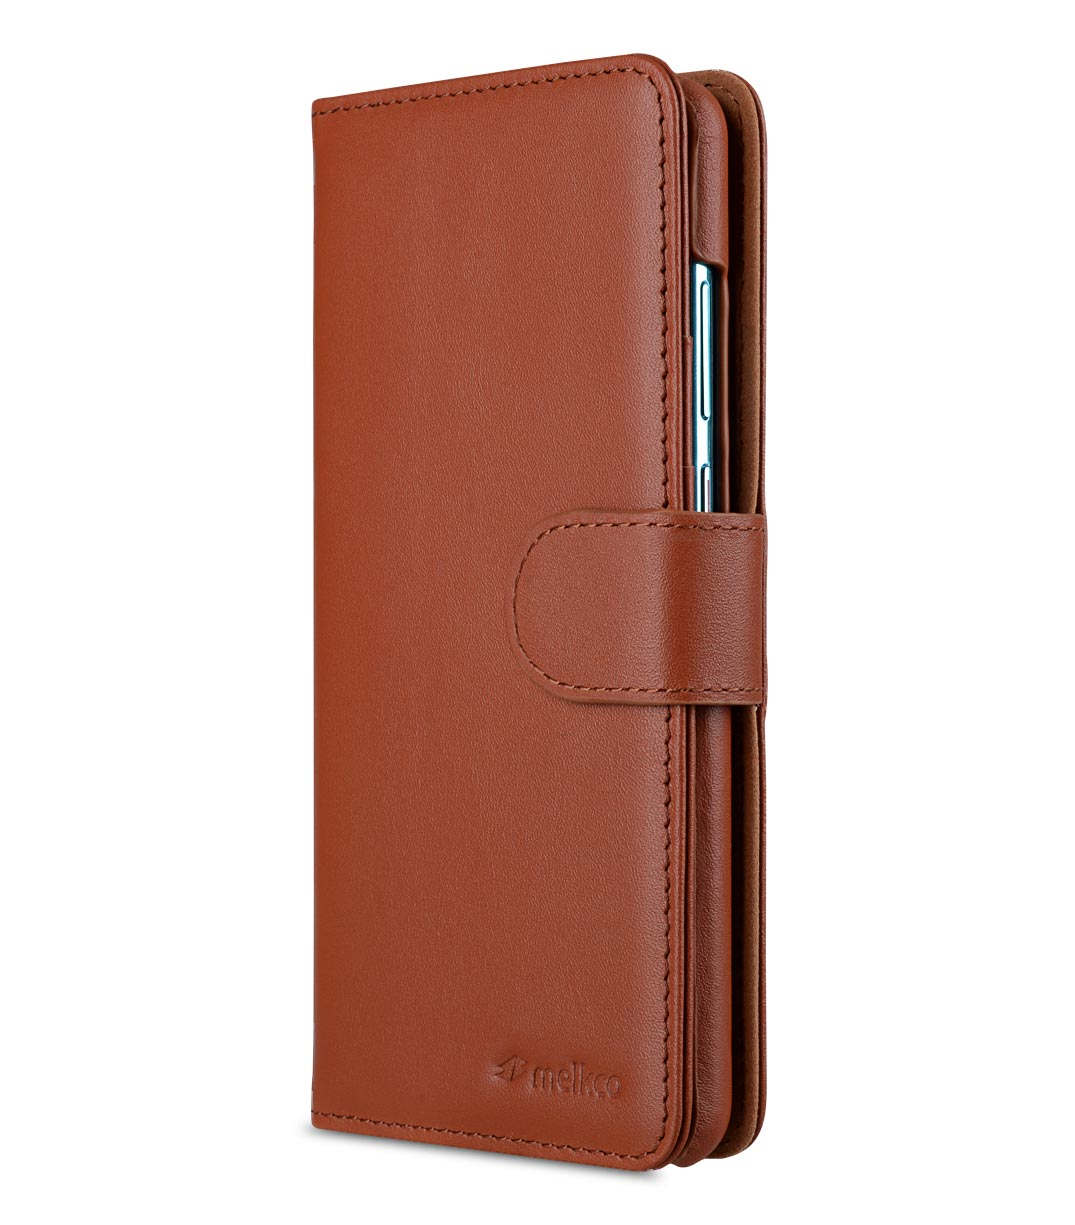 Melkco Alphard Series Premium Leather Alphard Type Case for Huawei P30 - ( Orange Brown )